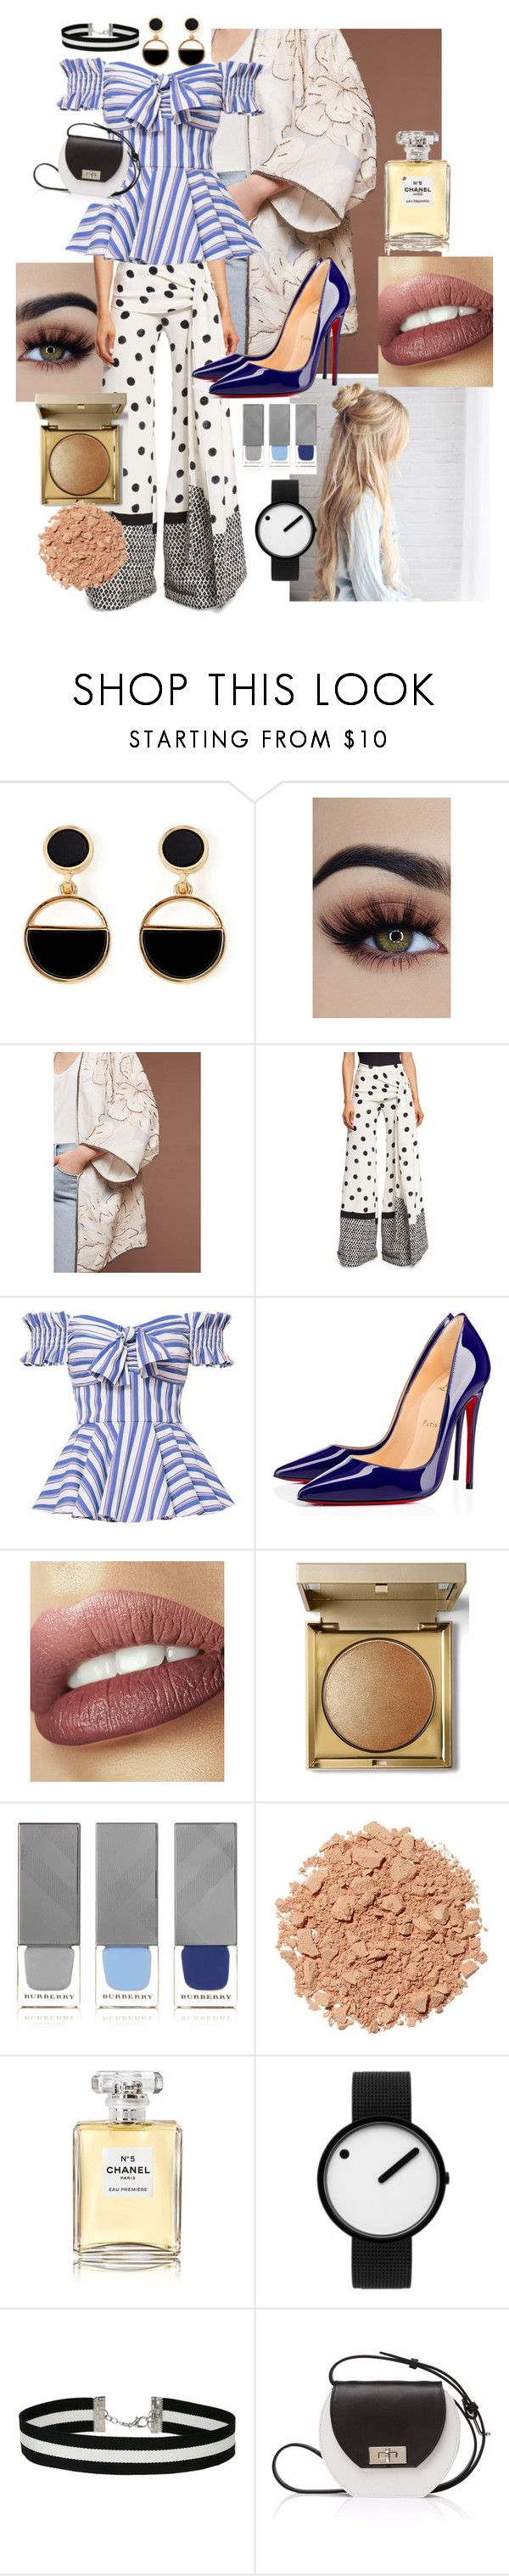 """STRIPES, POLKA DOTS, FLORALS"" by ashleyleannepelham ❤ liked on Polyvore featuring Warehouse, AS by DF, Oscar de la Renta, Caroline Constas, Christian Louboutin, Stila, Burberry, Illamasqua, Chanel and Rosendahl"